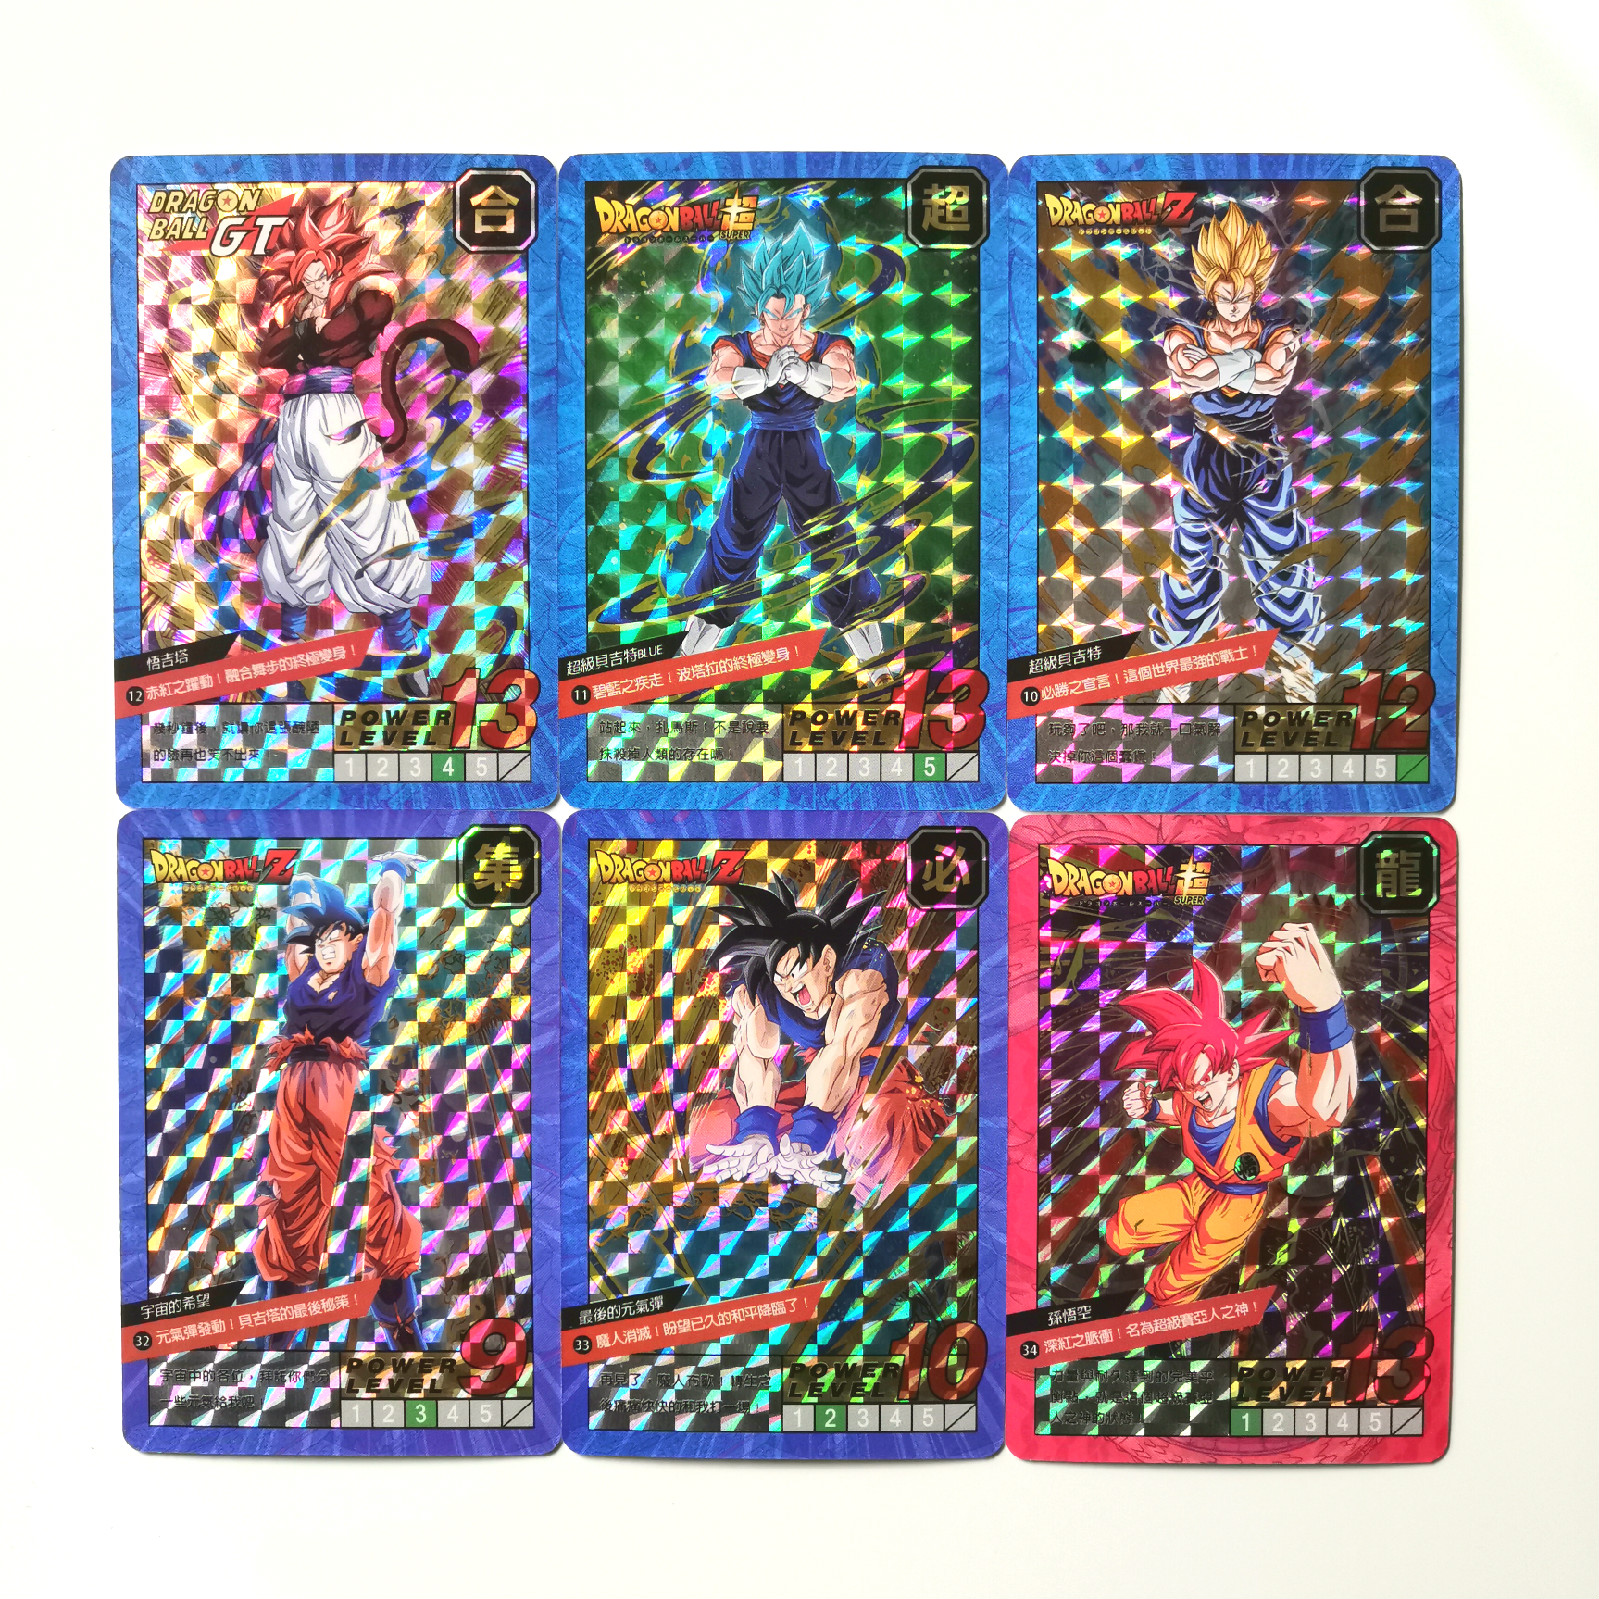 37pcs Super Dragon Ball Heroes Battle Card Ultra Instinct Goku Jiren Hit Kale Vegeta Dragon Ball Super Game Collection Cards